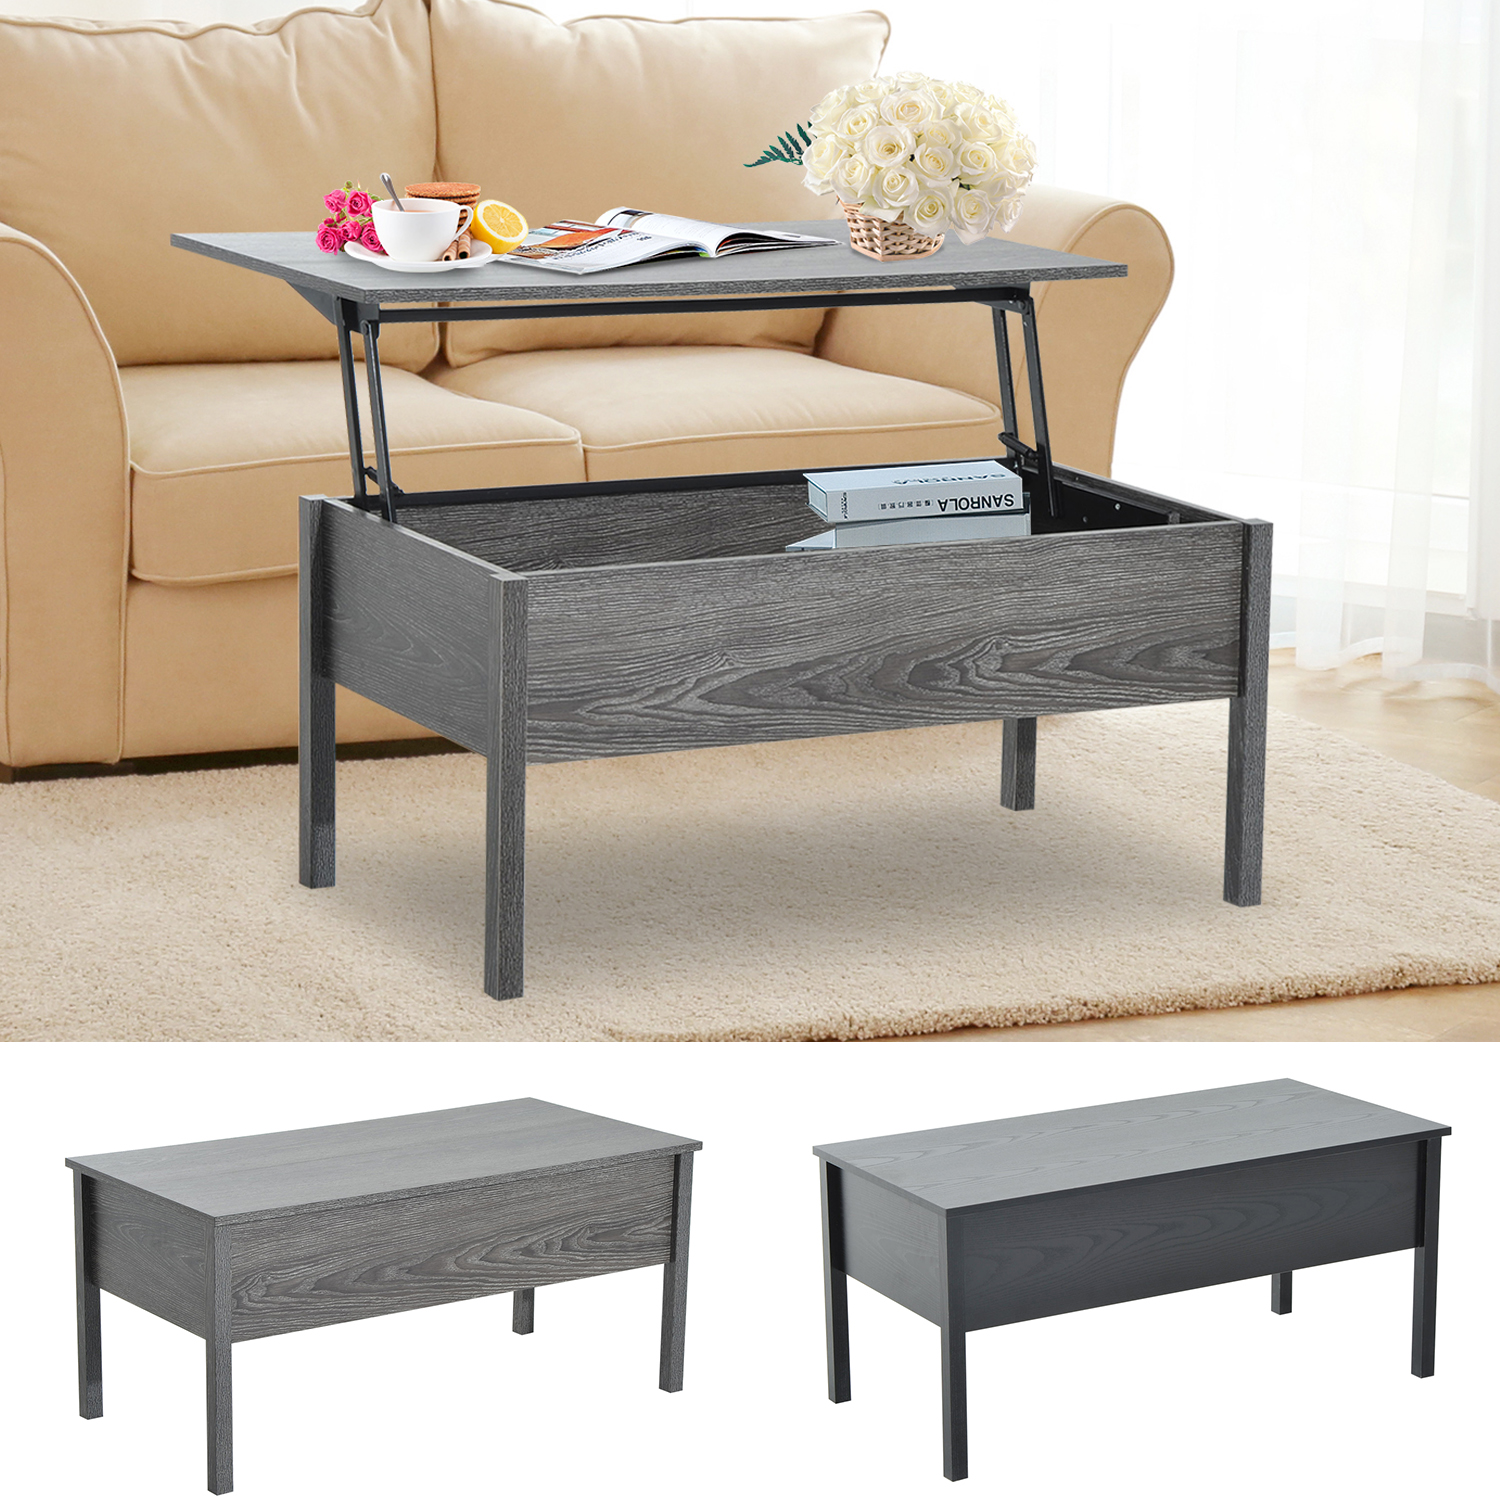 "Details about 5"" Modern Lift Top Coffee Table Floating Retractable Lift  Top Hidden Storage"